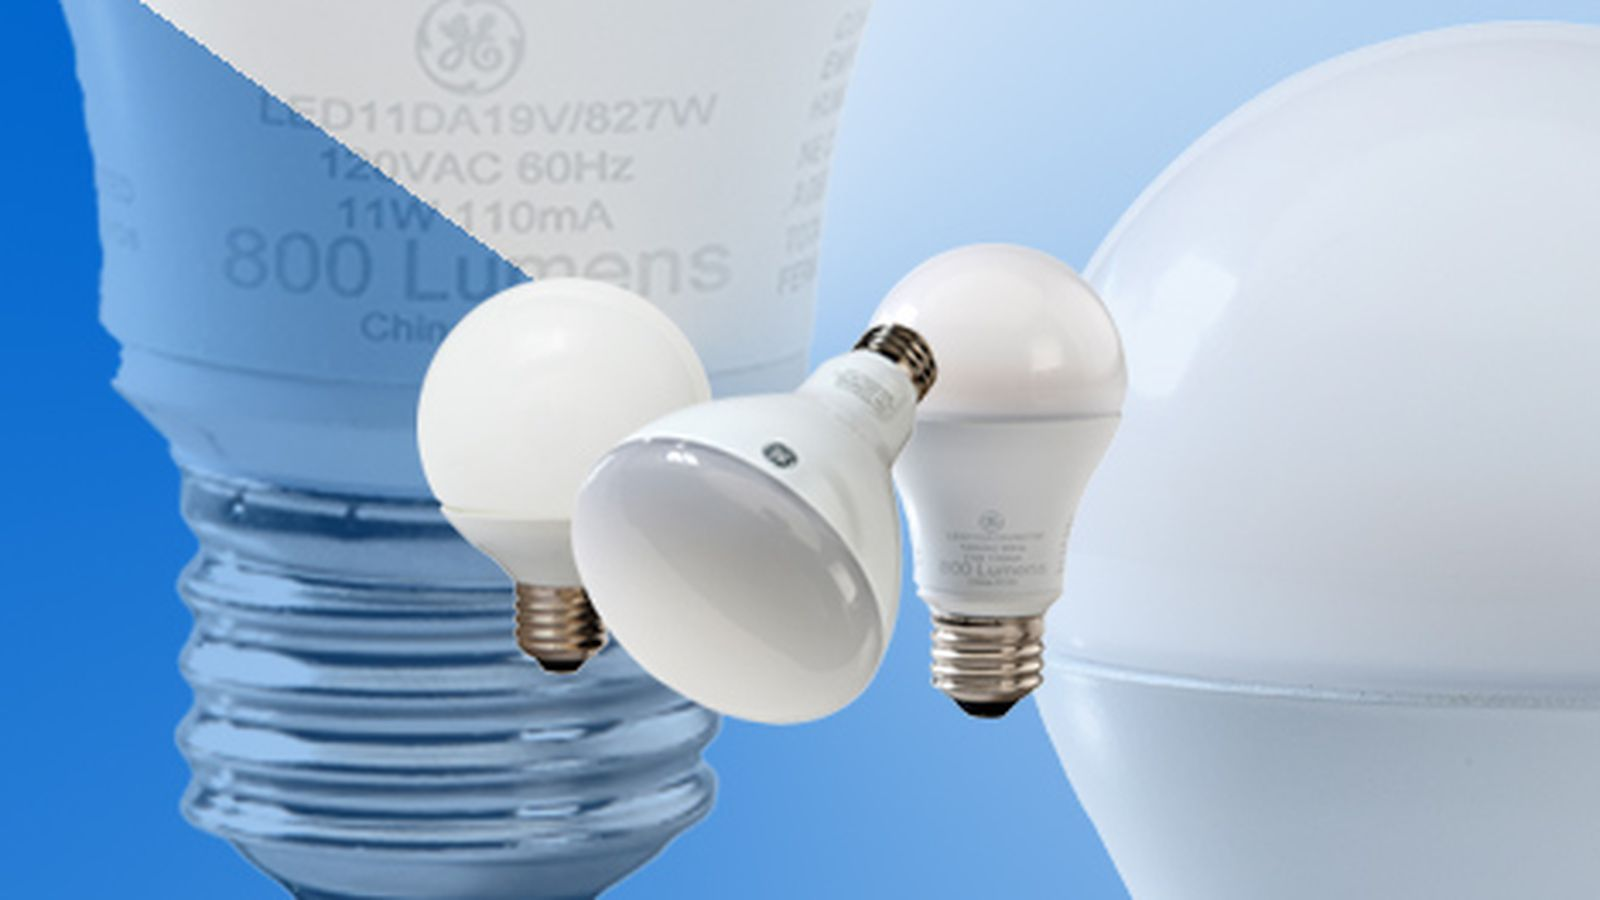 GE is phasing out CFL bulbs so that LED can take off